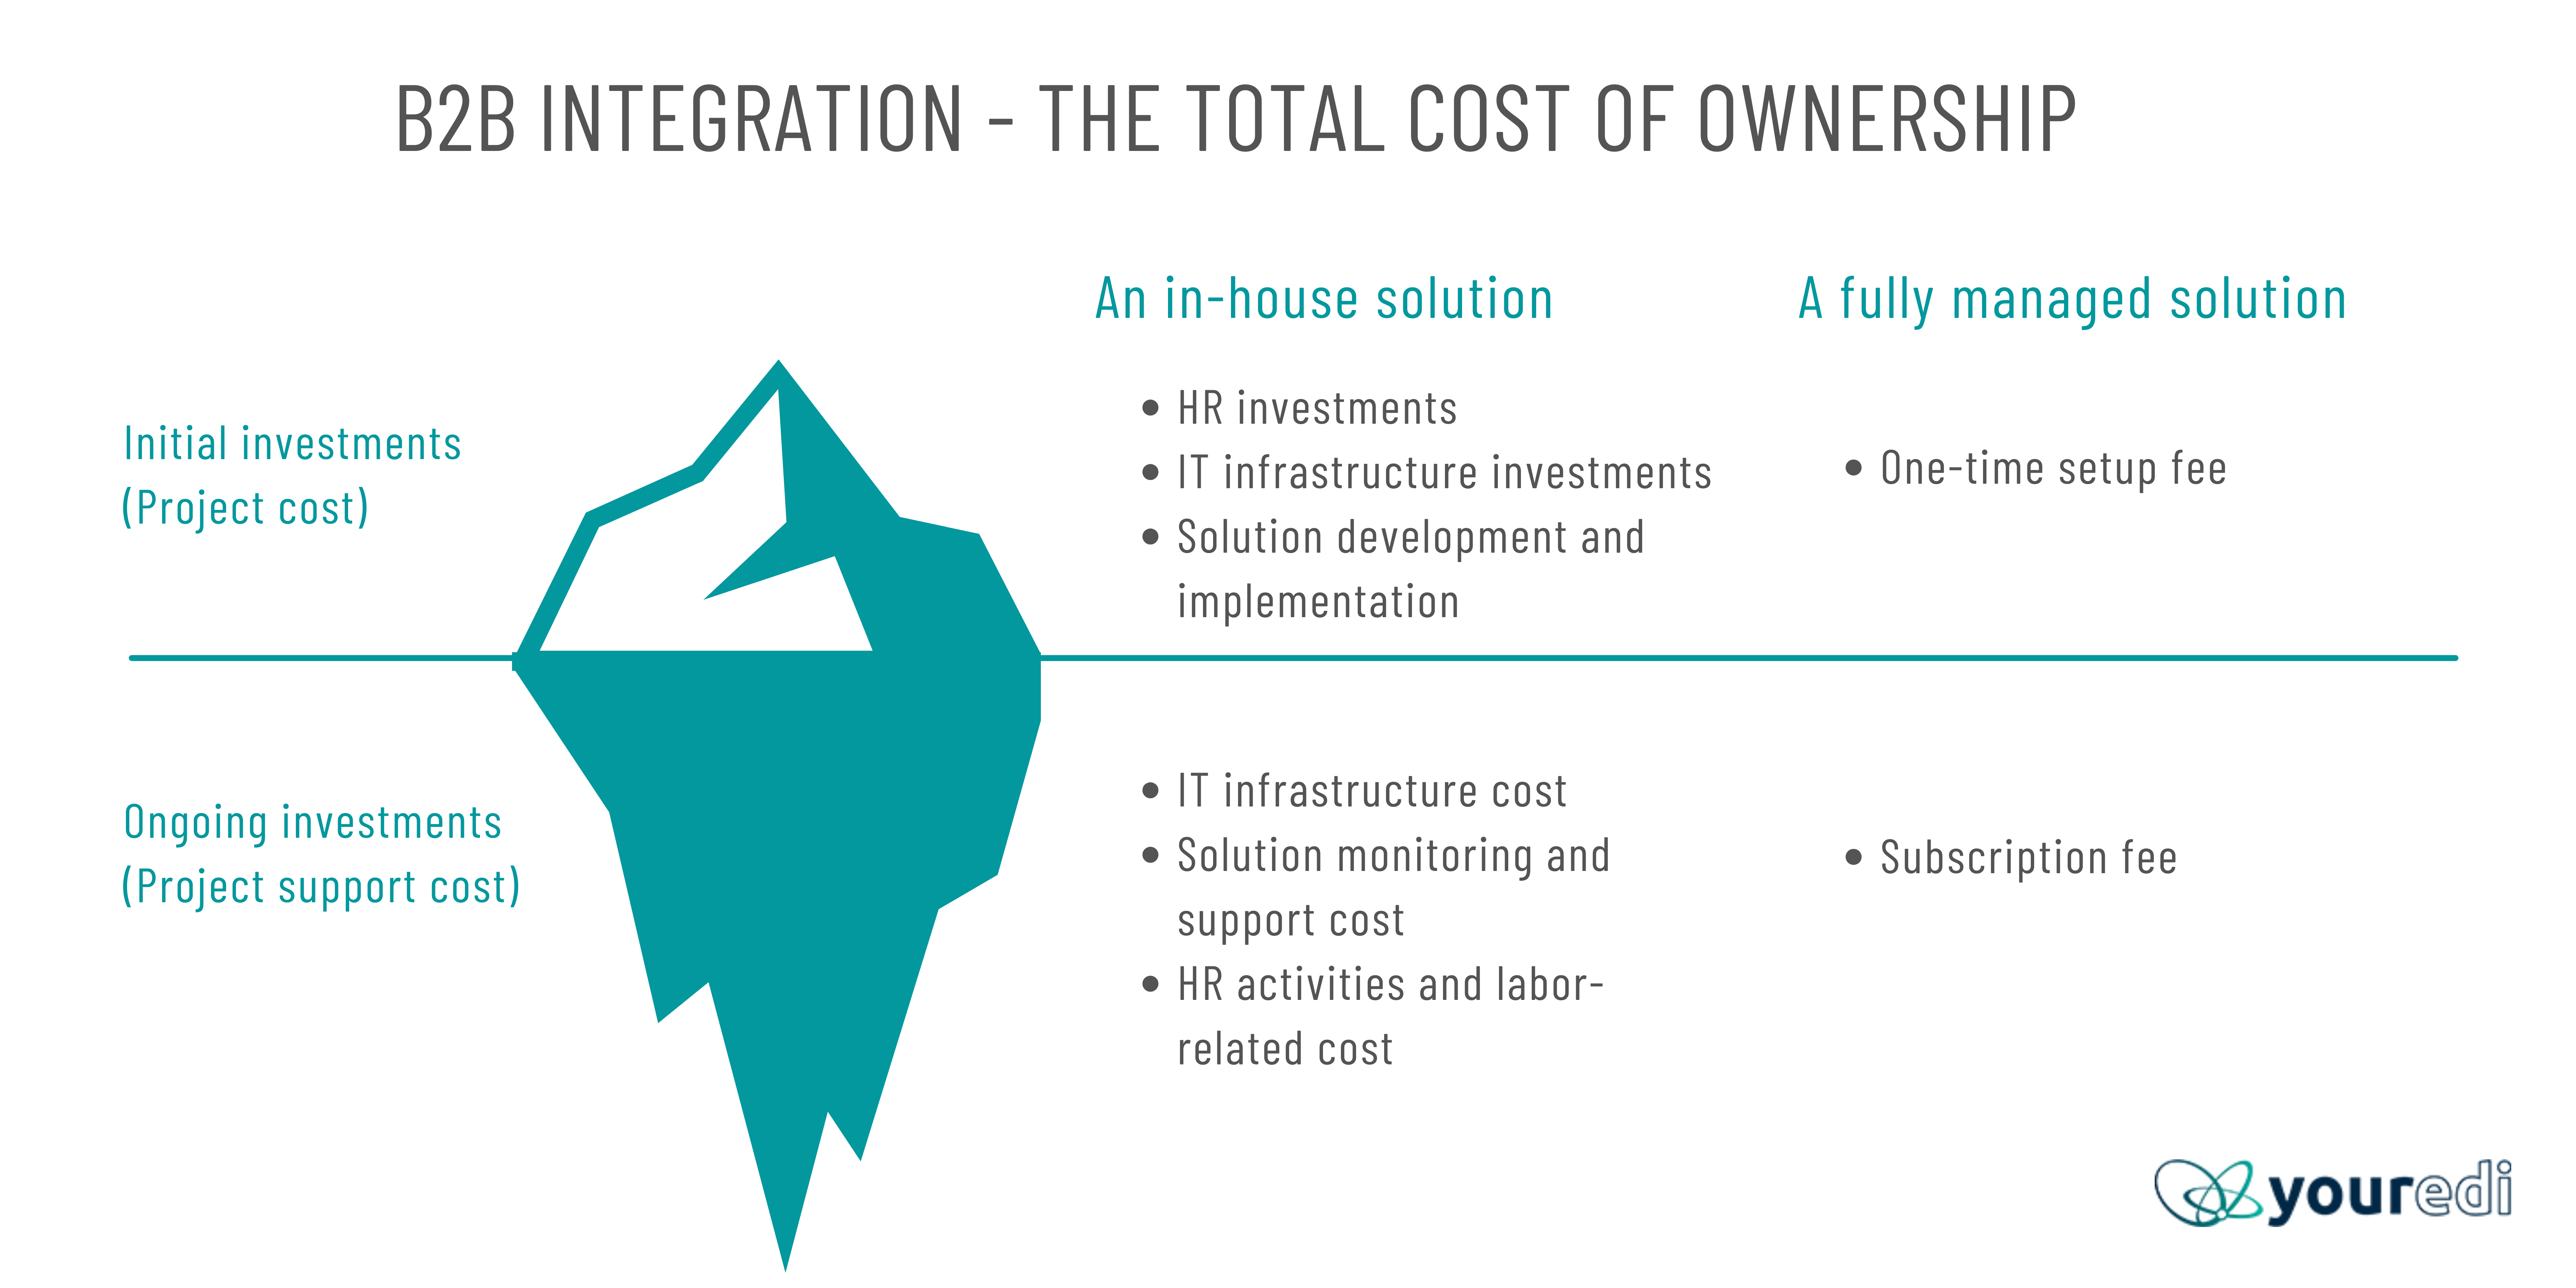 1 b2b integration - the TOTAL COST OF OWNERSHIP